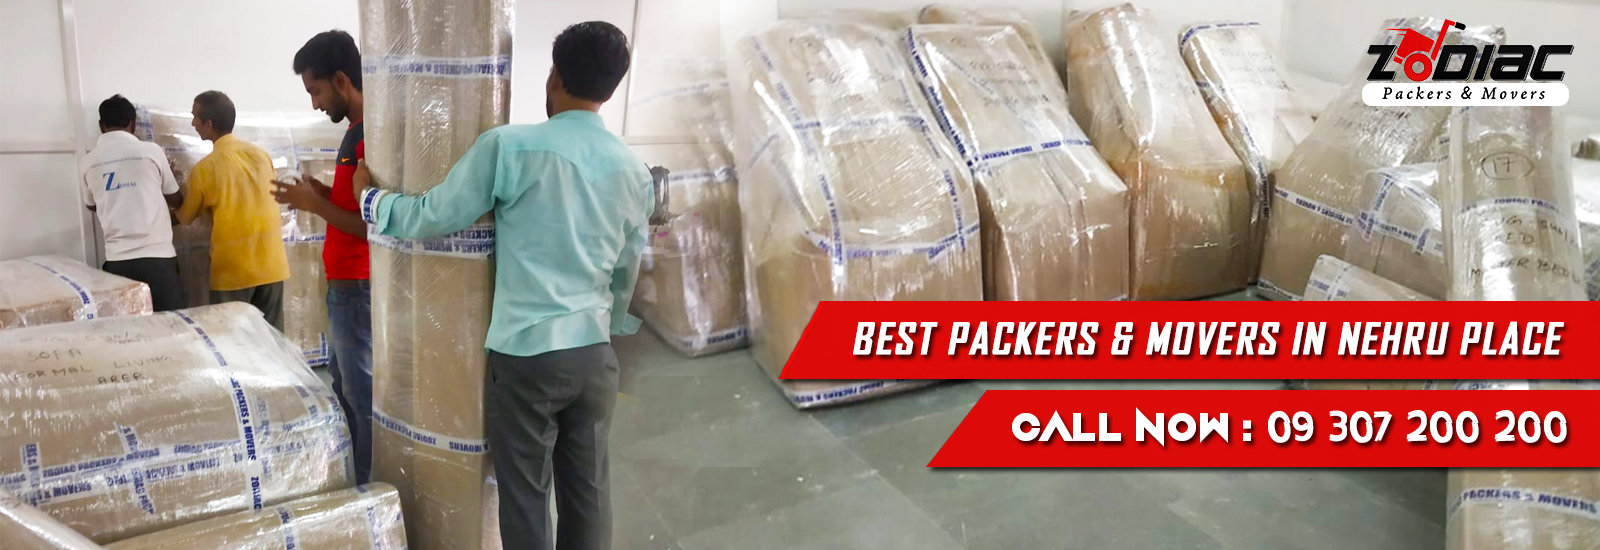 Packers and Movers in Nehru Place